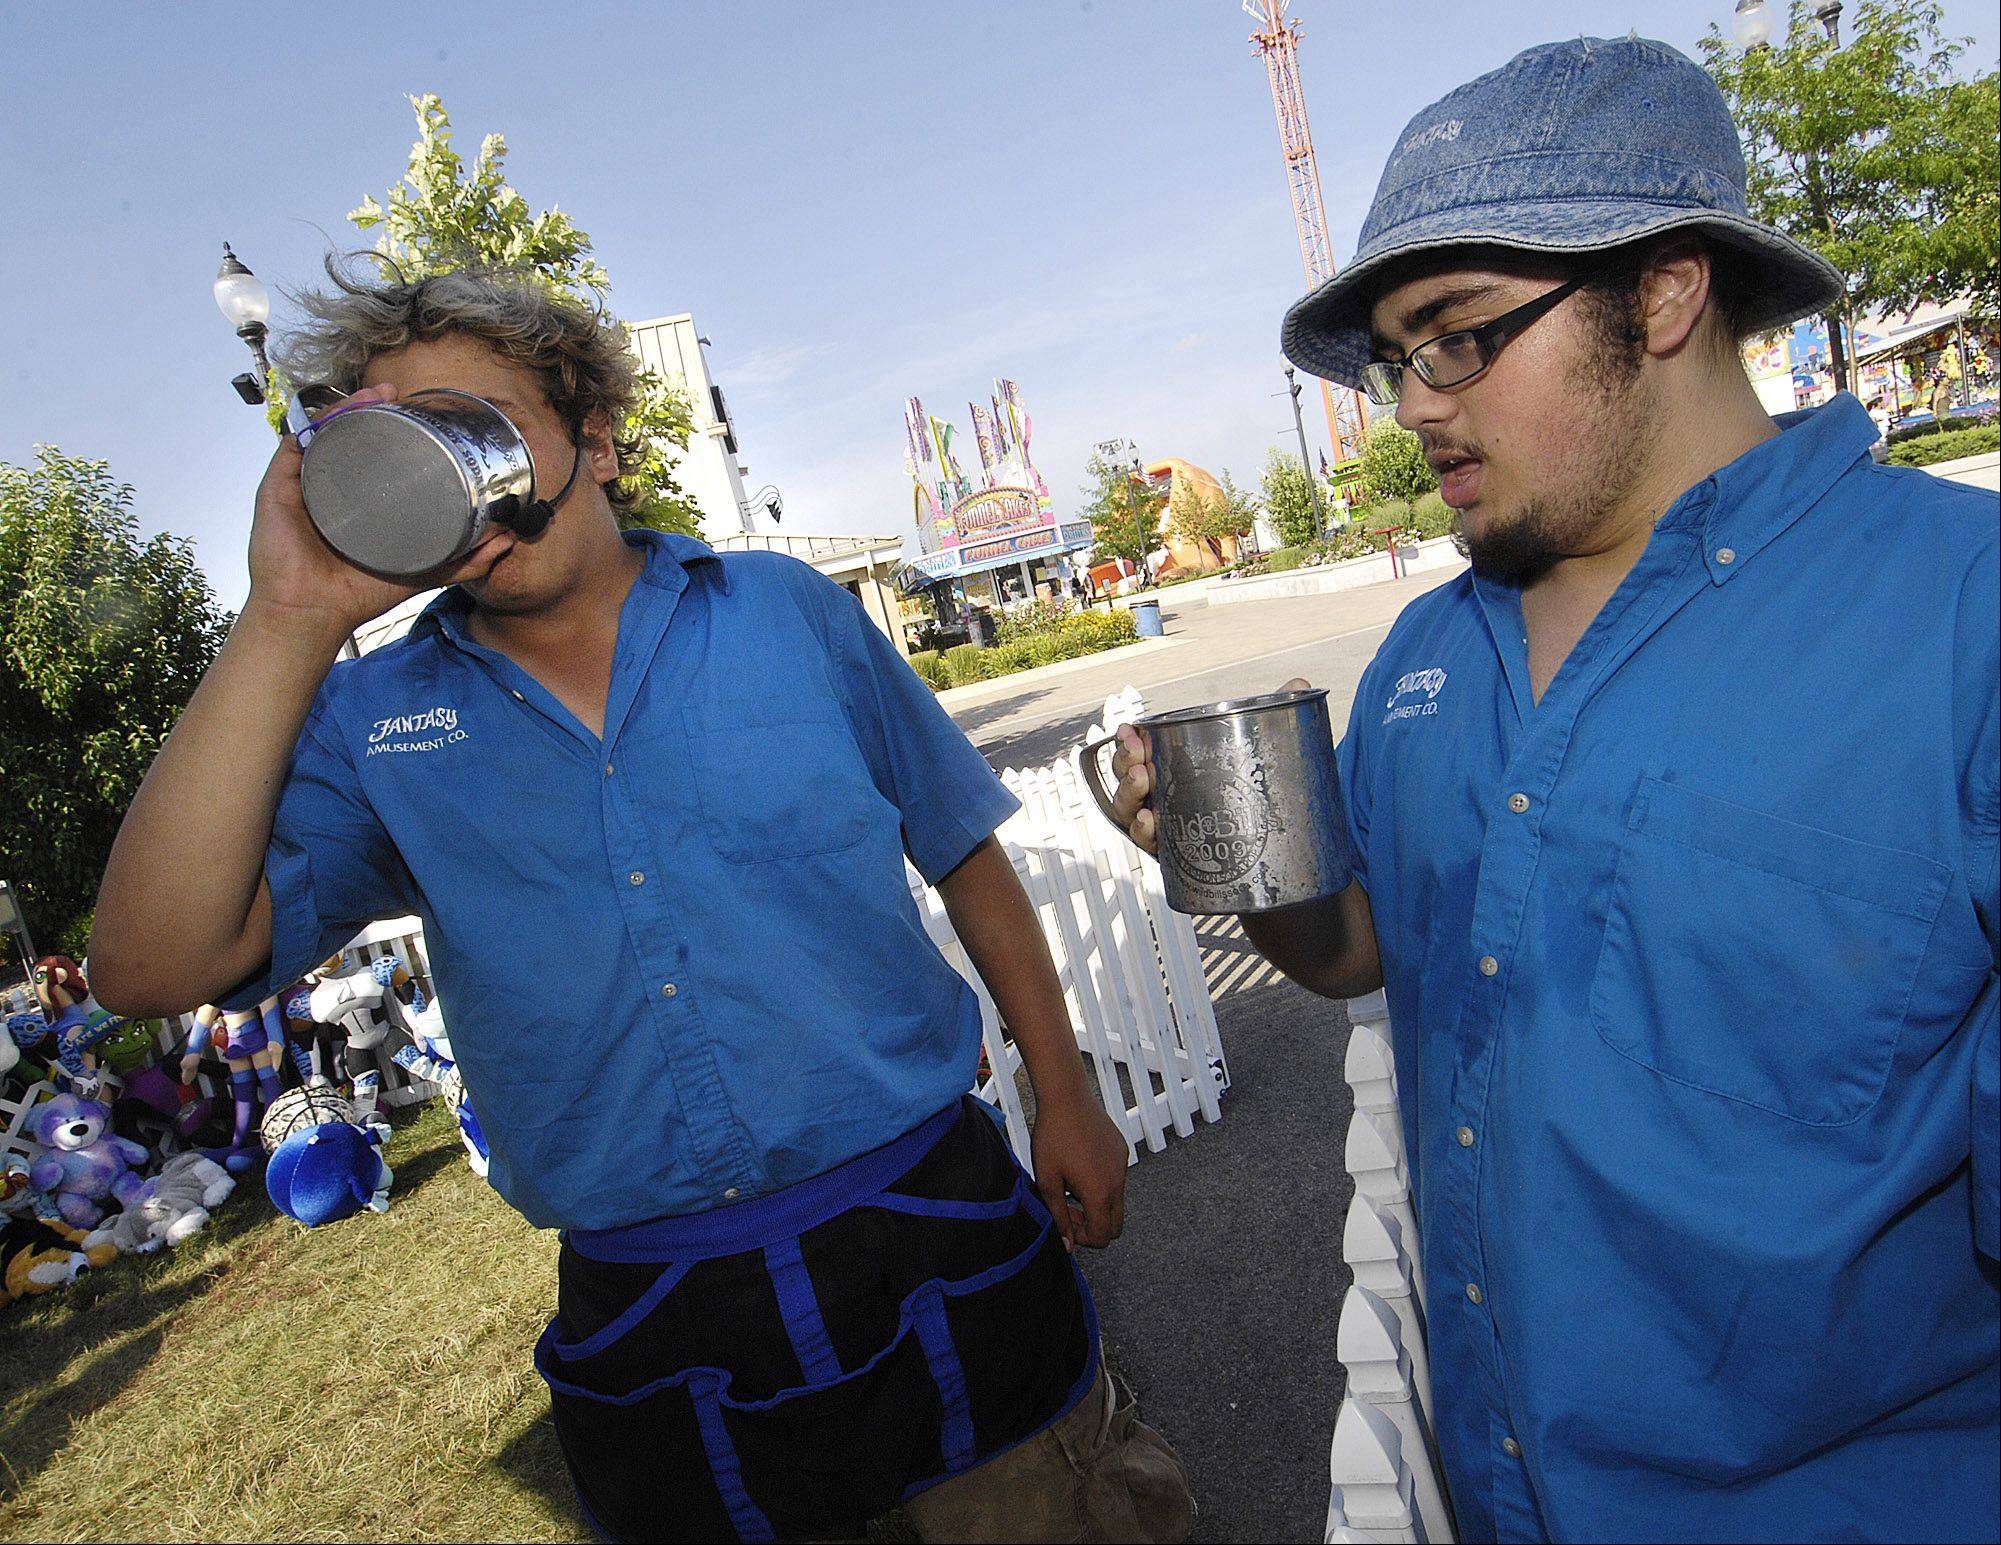 Fantasy Amusements worker Nick Dus chugs his drink while Zachary Romano lets his settle before taking another slug of a mixture of orange and grape drinks at the Hammer Slammer game during the first day of the Kane County Fair Wednesday in St. Charles.